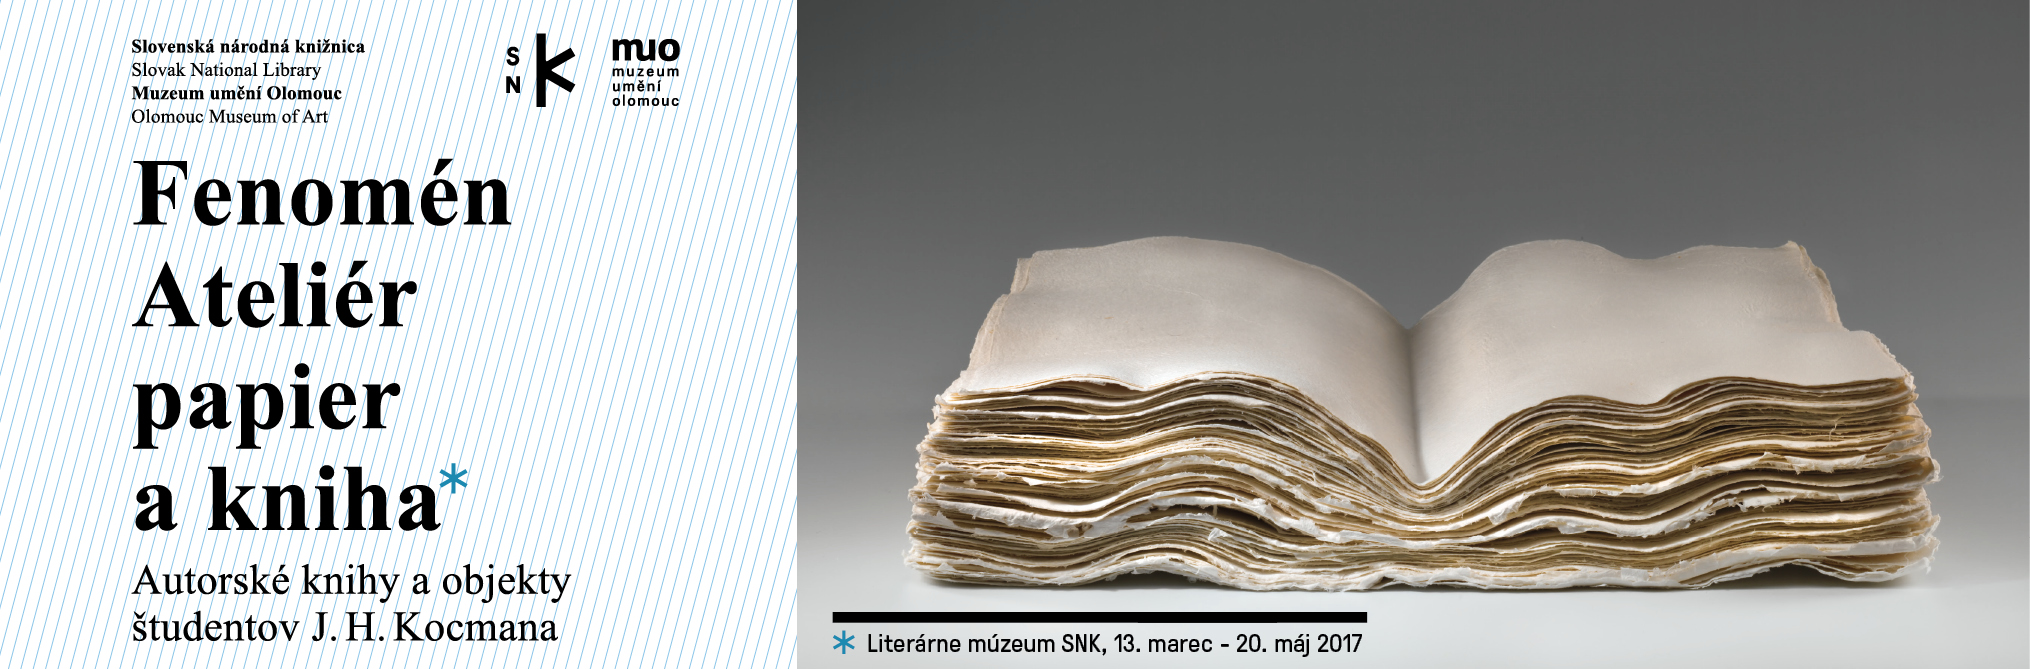 Slovak National Library - The Phenomenon of the Papier and Book Atelier (exhibition)